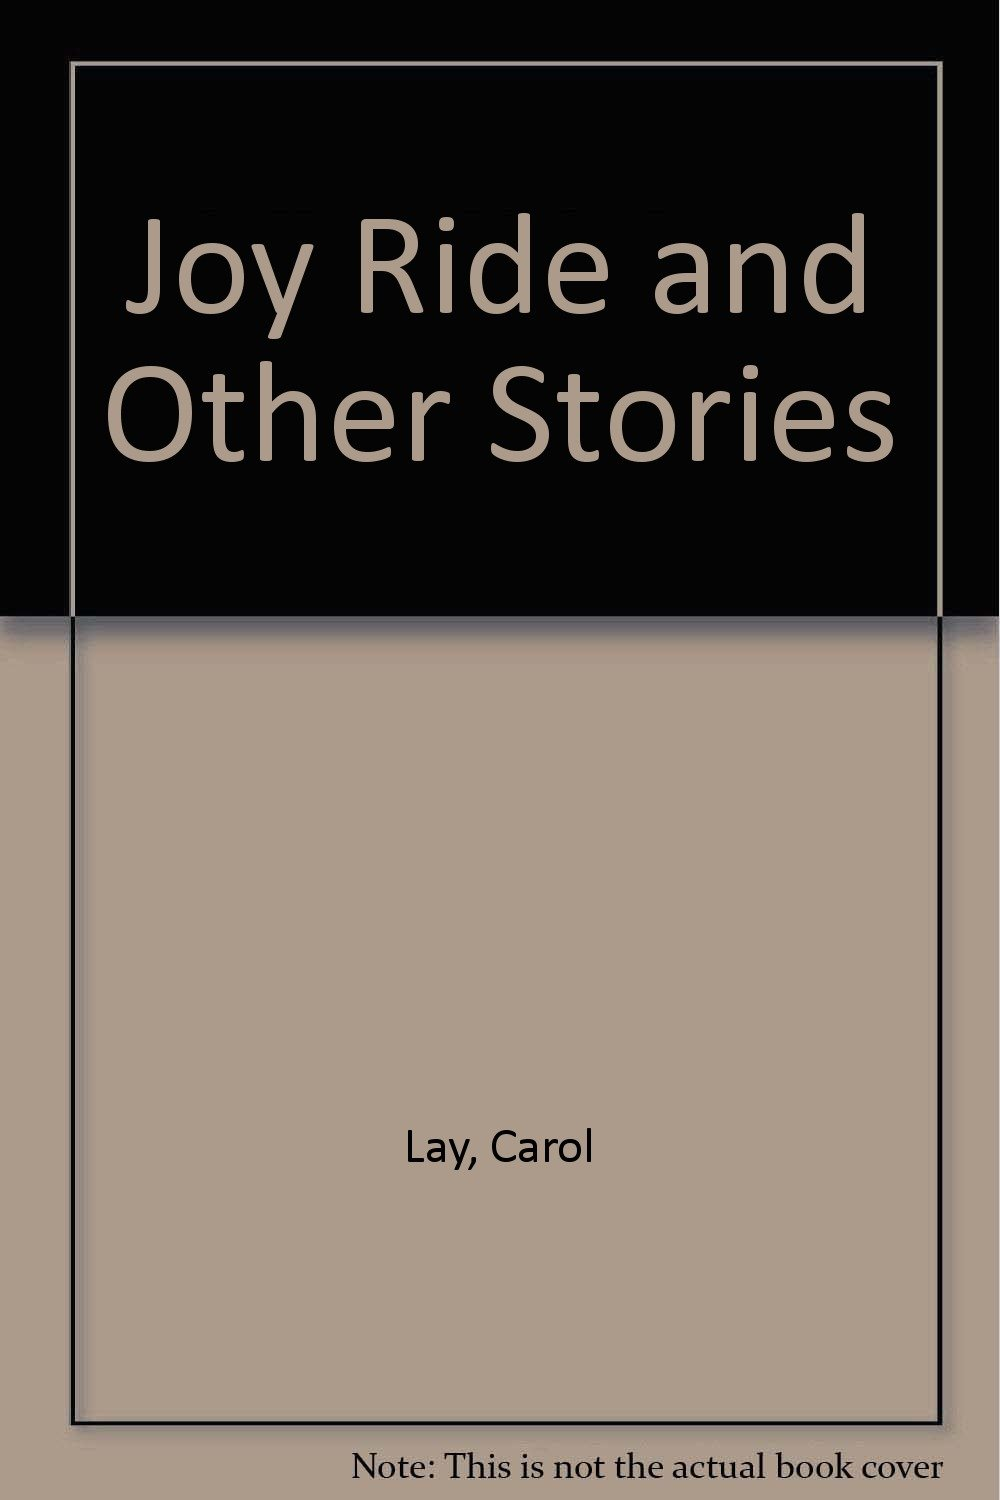 Joy Ride and Other Stories